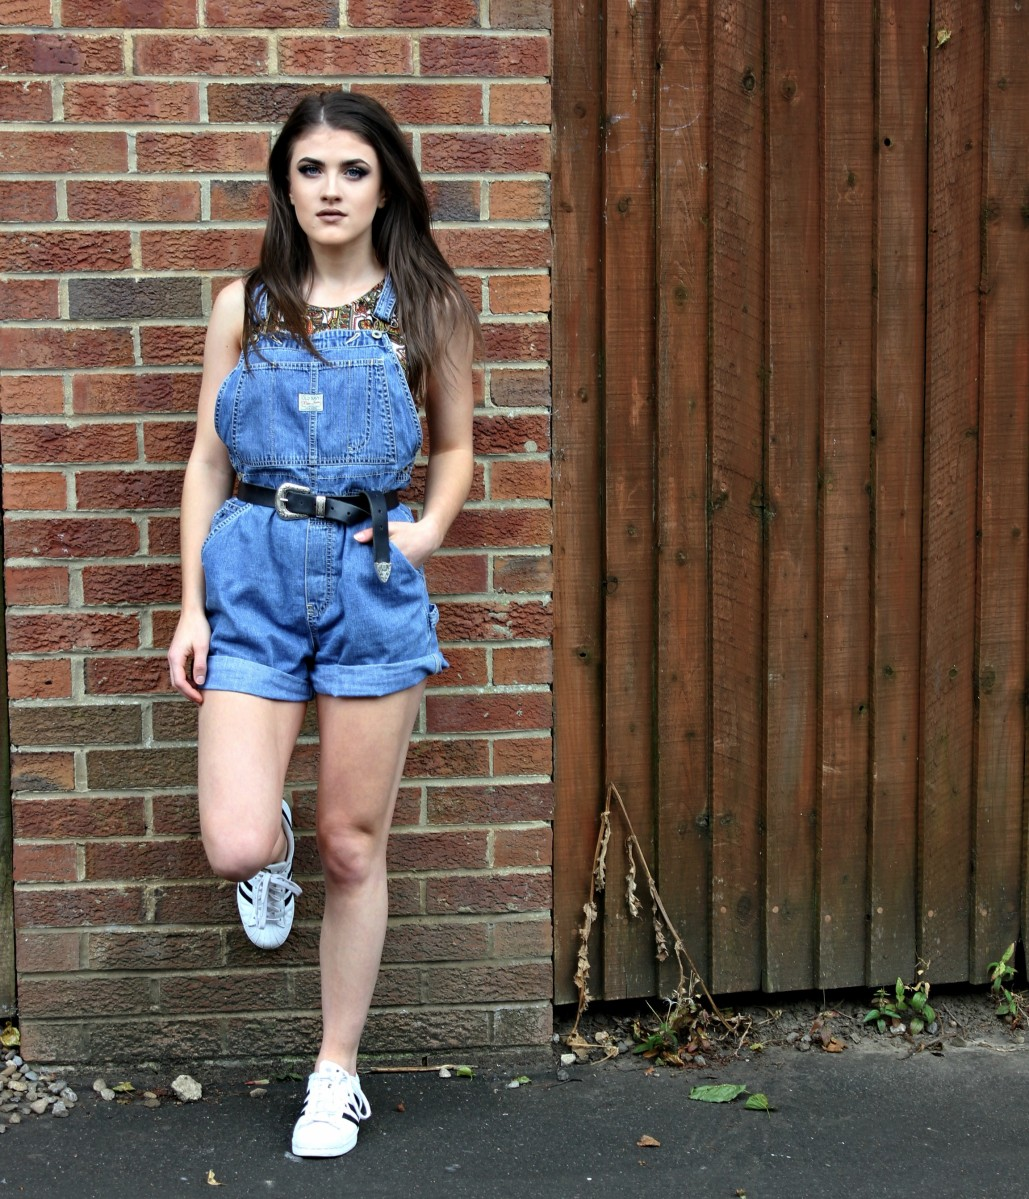 THE SHORT DUNGAREE